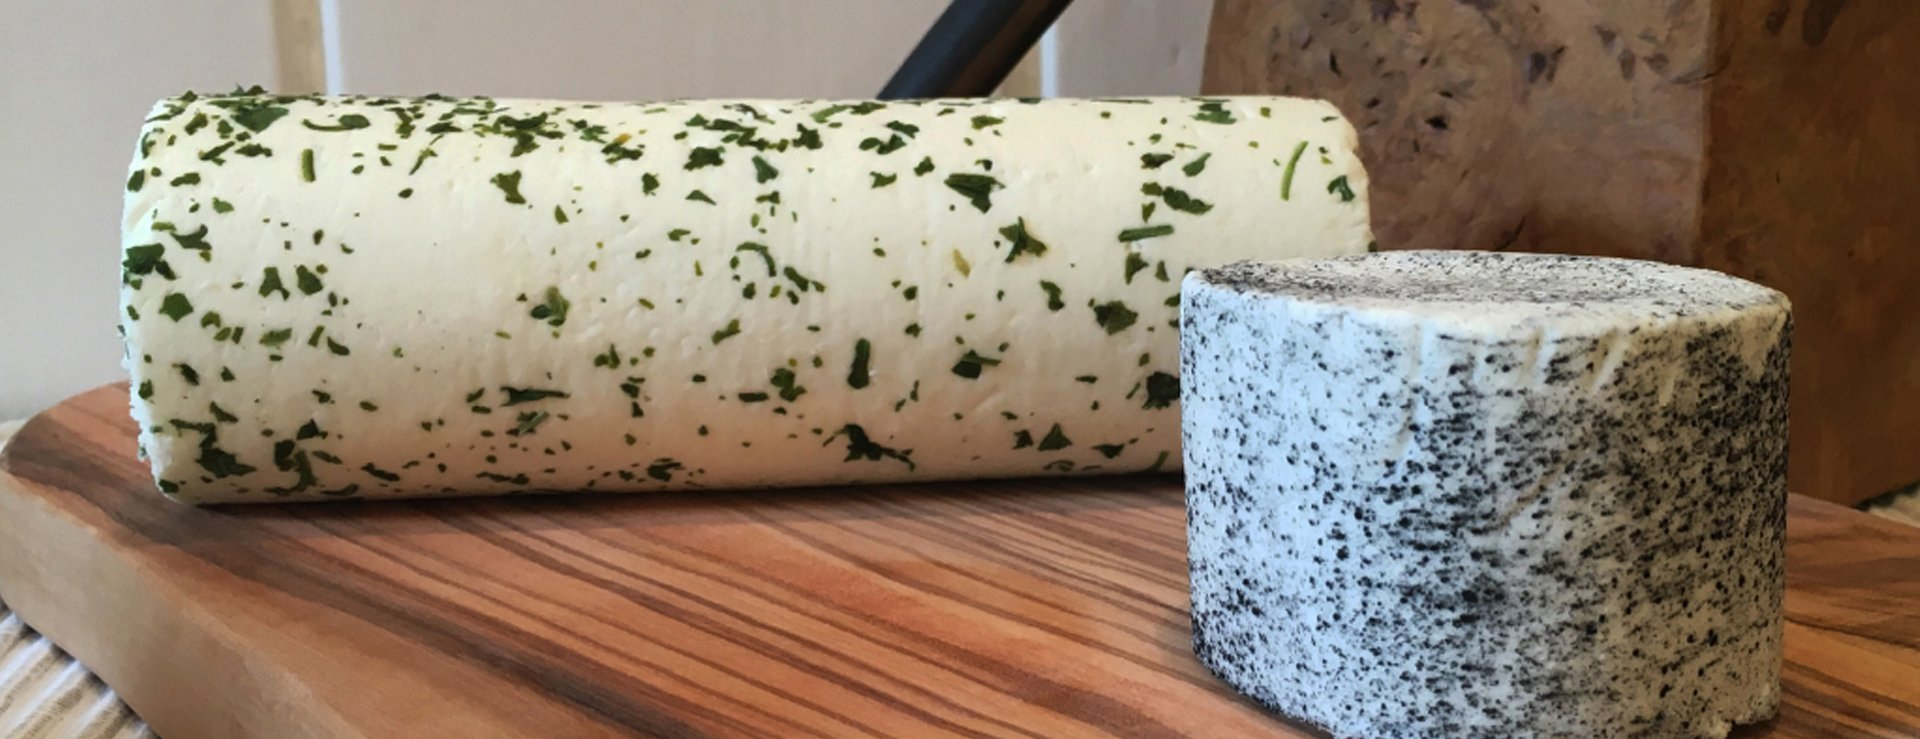 Goat's cheeses with chives and herbs